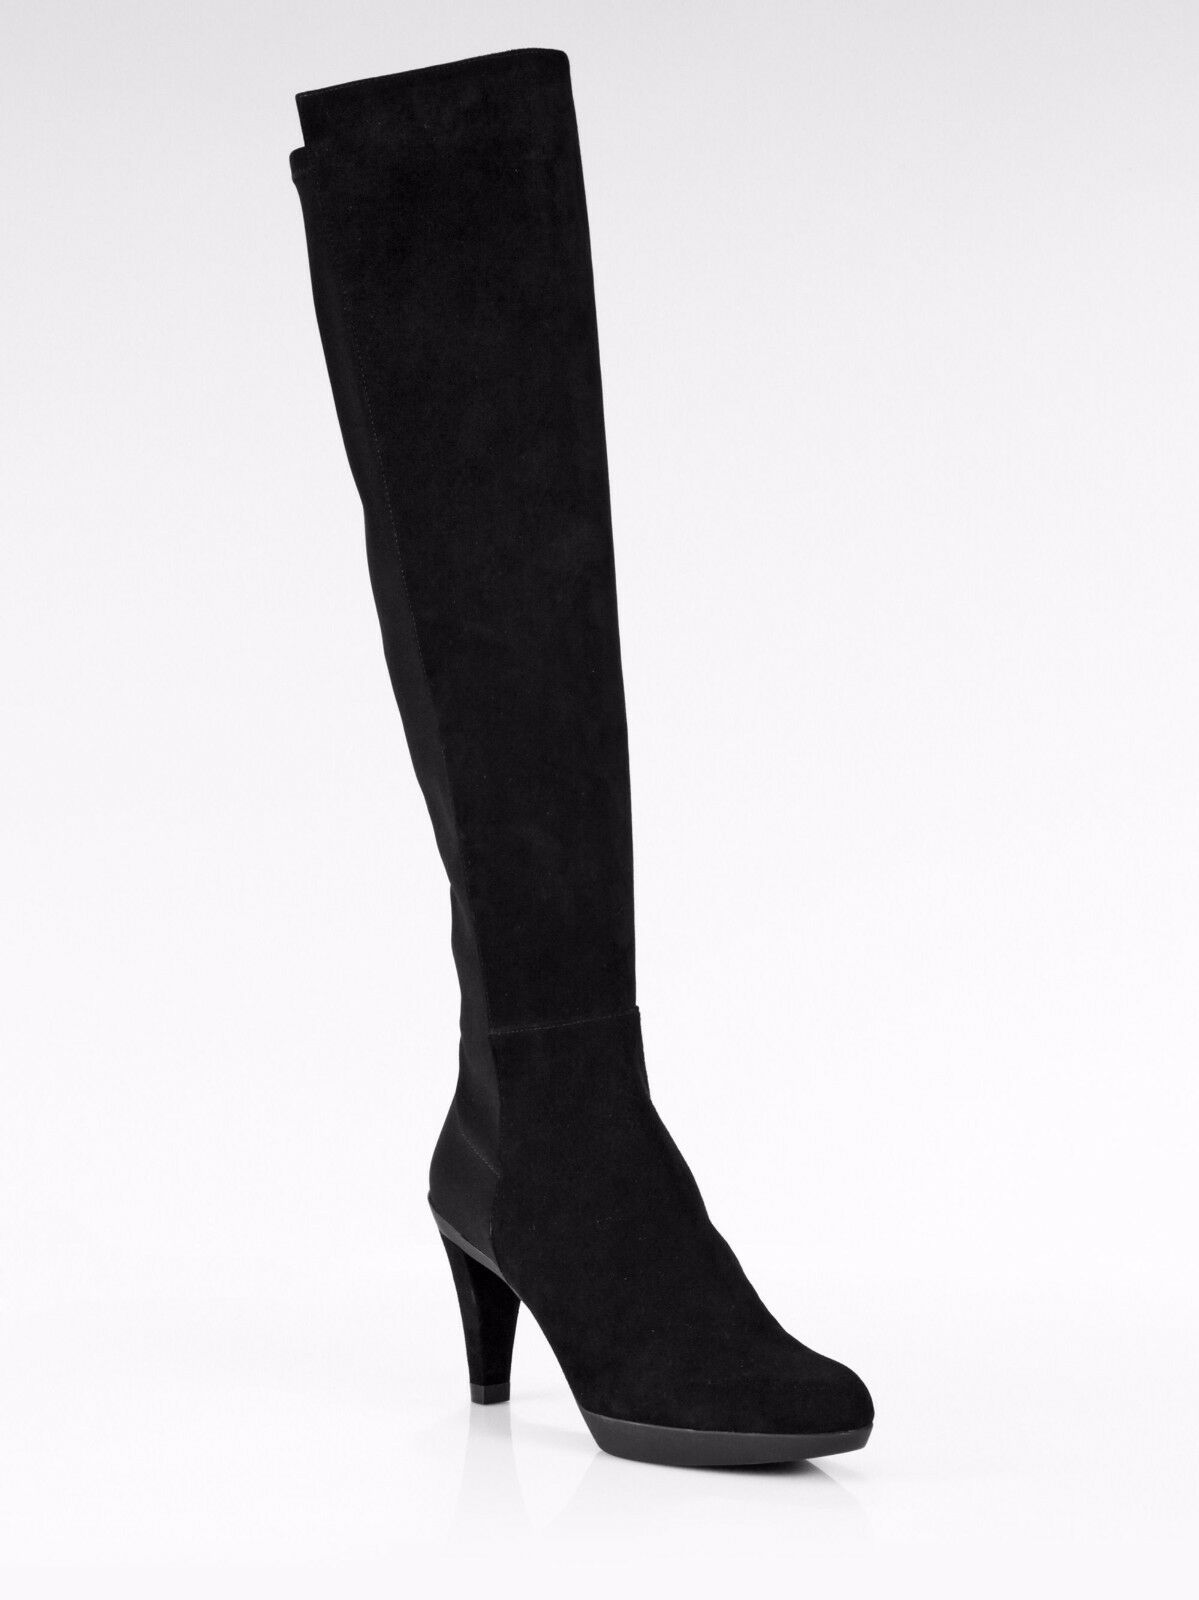 645 Stuart Weitzman Demi Over The Knee Suede Stretch Back botas mujer 10.5 NEW